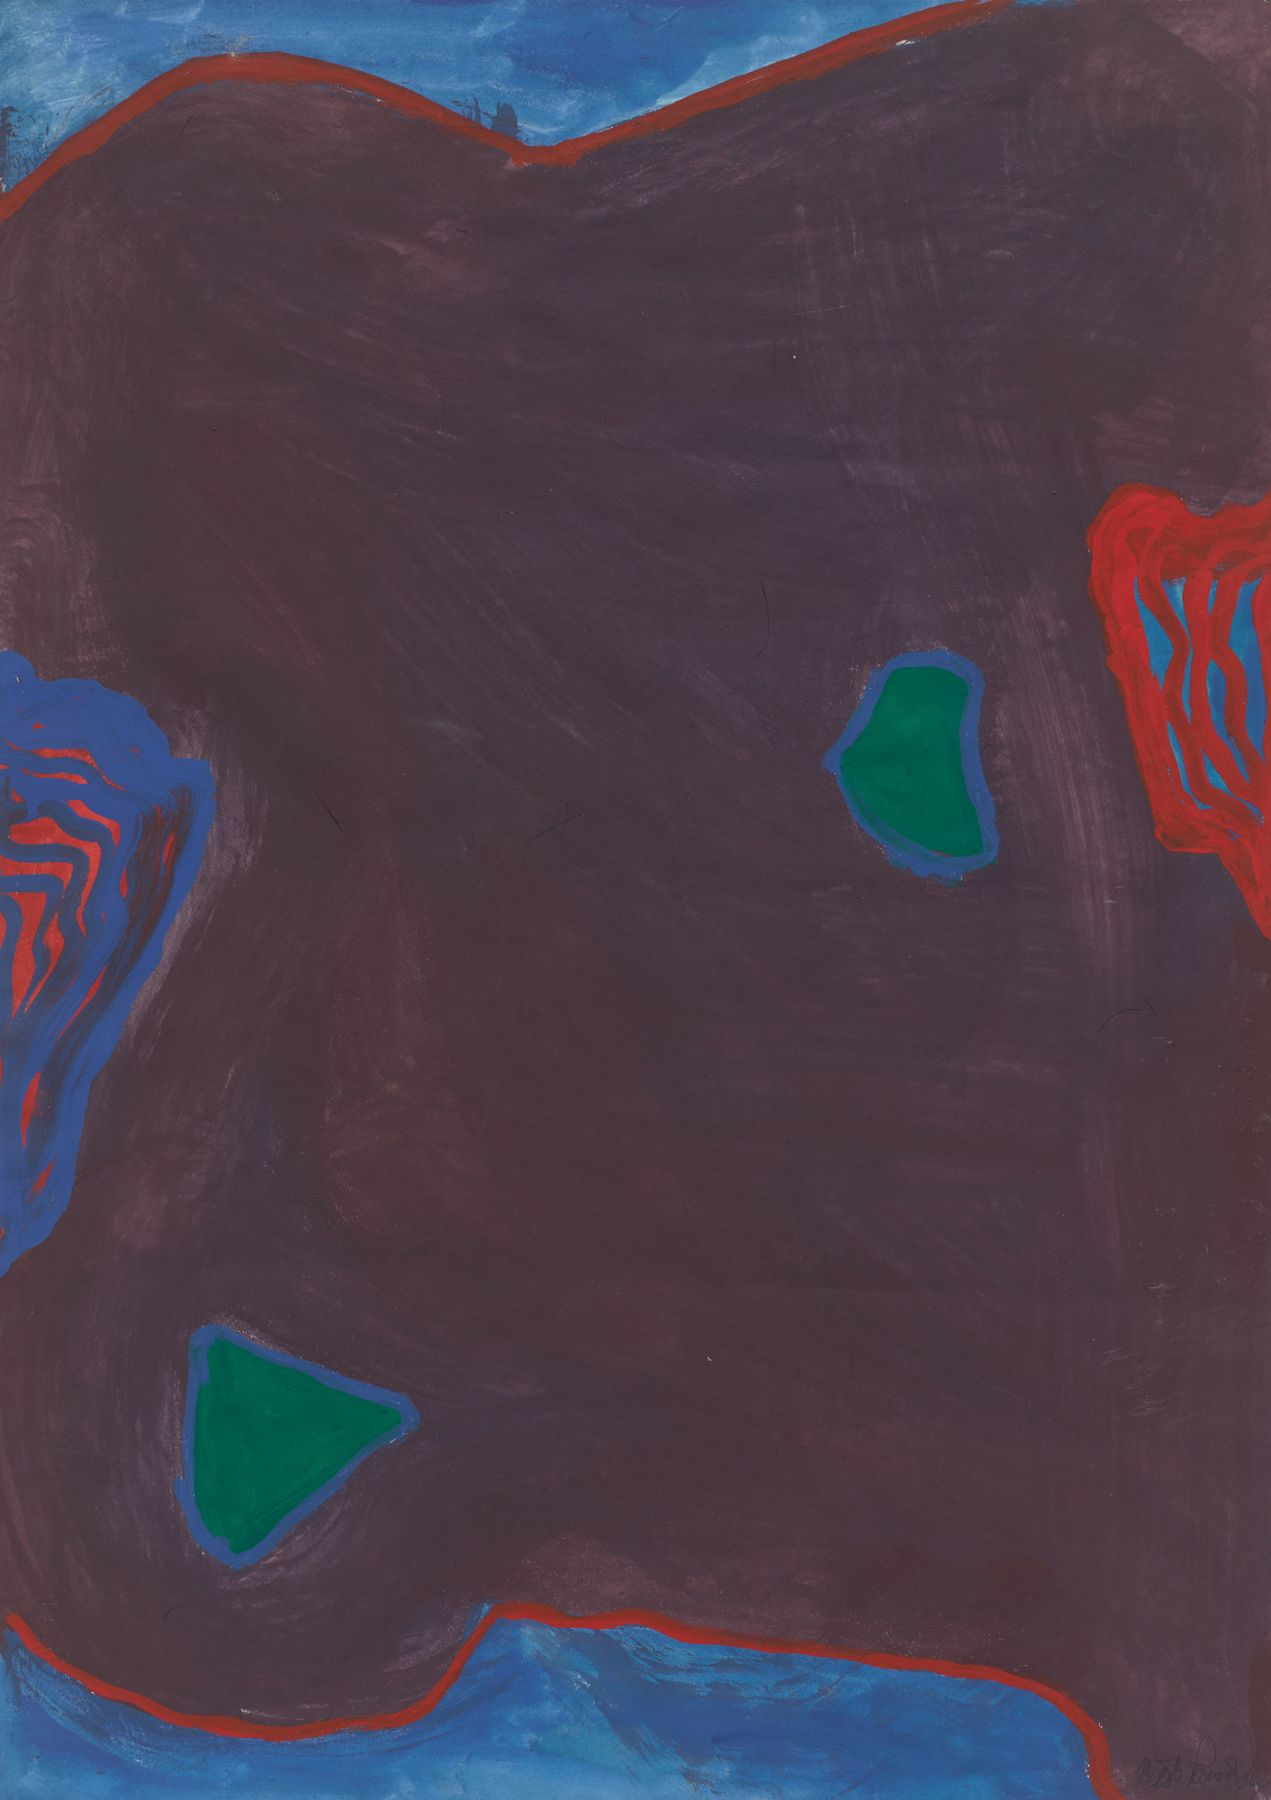 Betty Parsons, Untitled, 1964